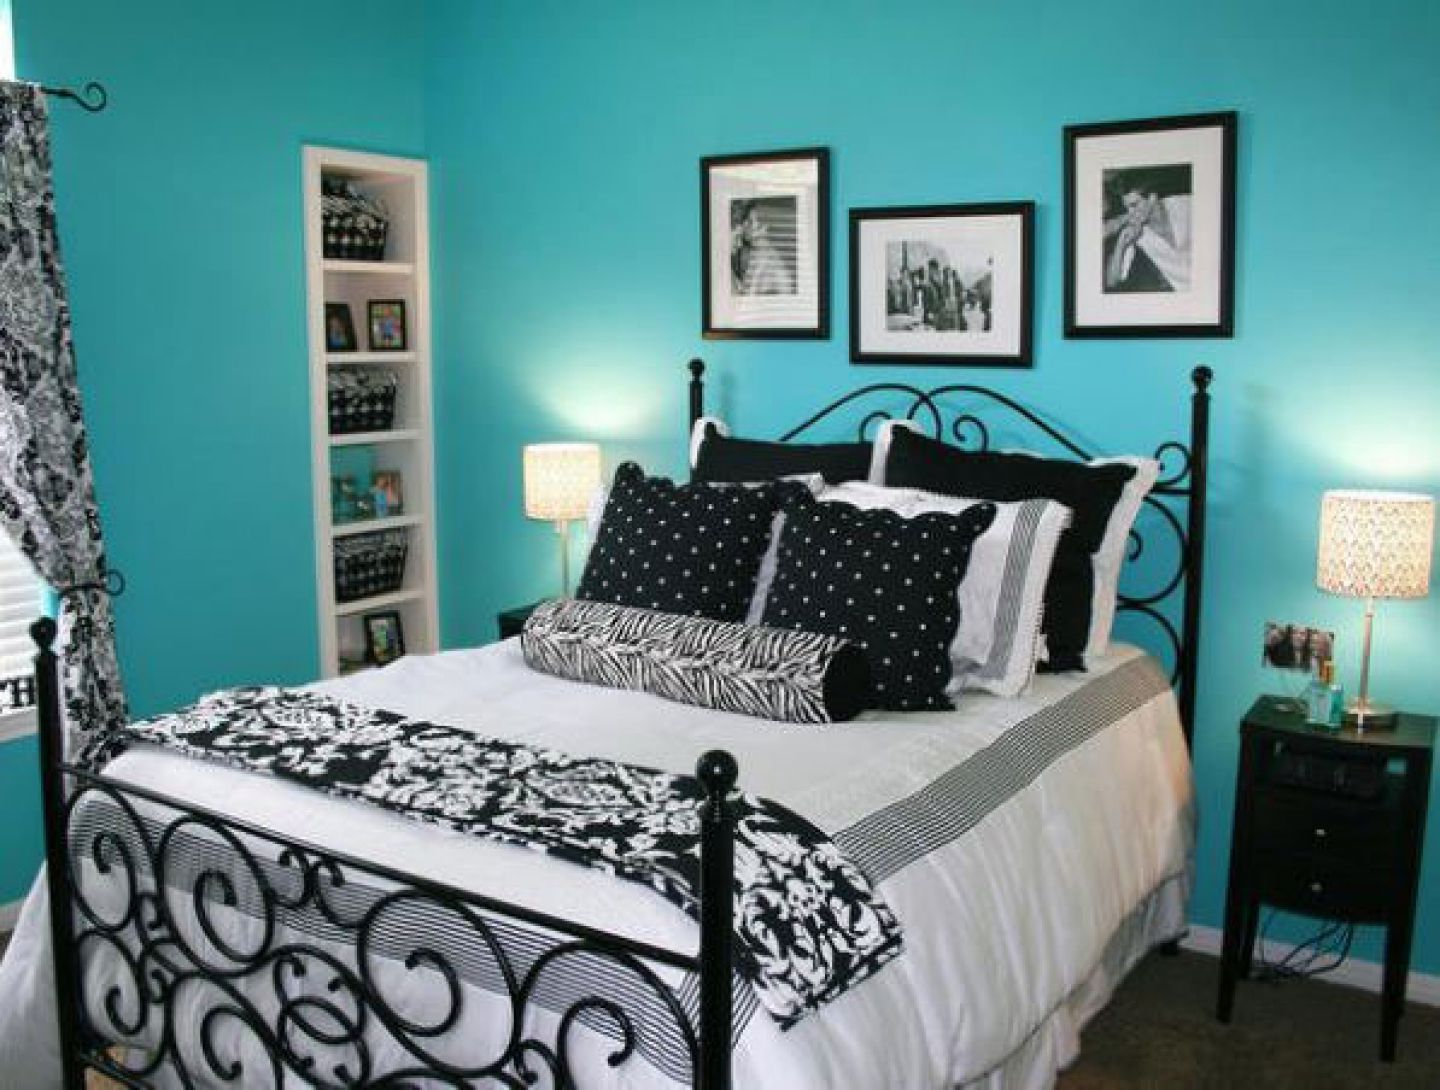 Blue bedroom design for teenagers - Cool Blue Themes Design Room For Teenage Girls With Elegant Black Metal Bed Frame That Have